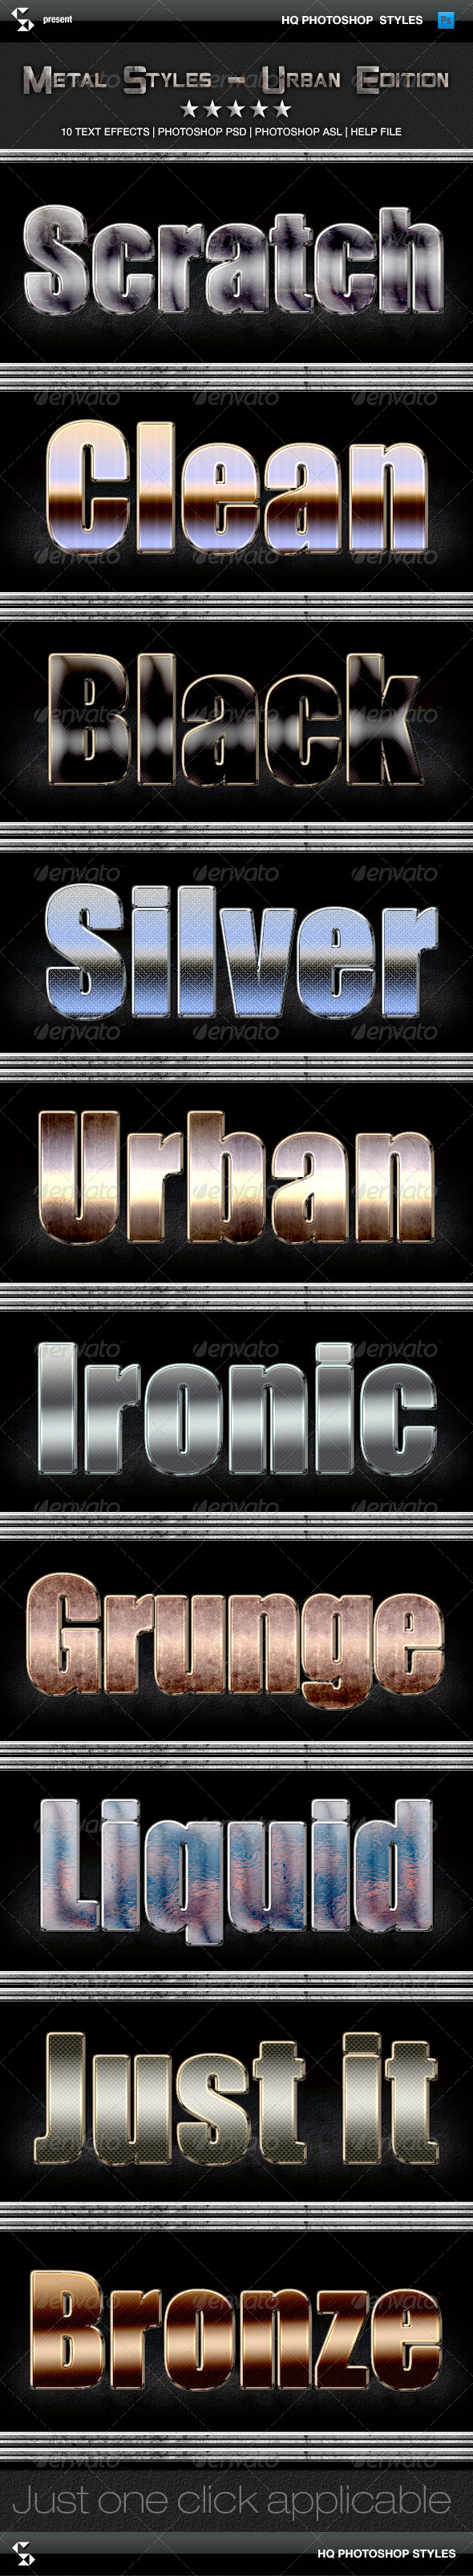 GraphicRiver Metal Styles Urban Edition 6424470